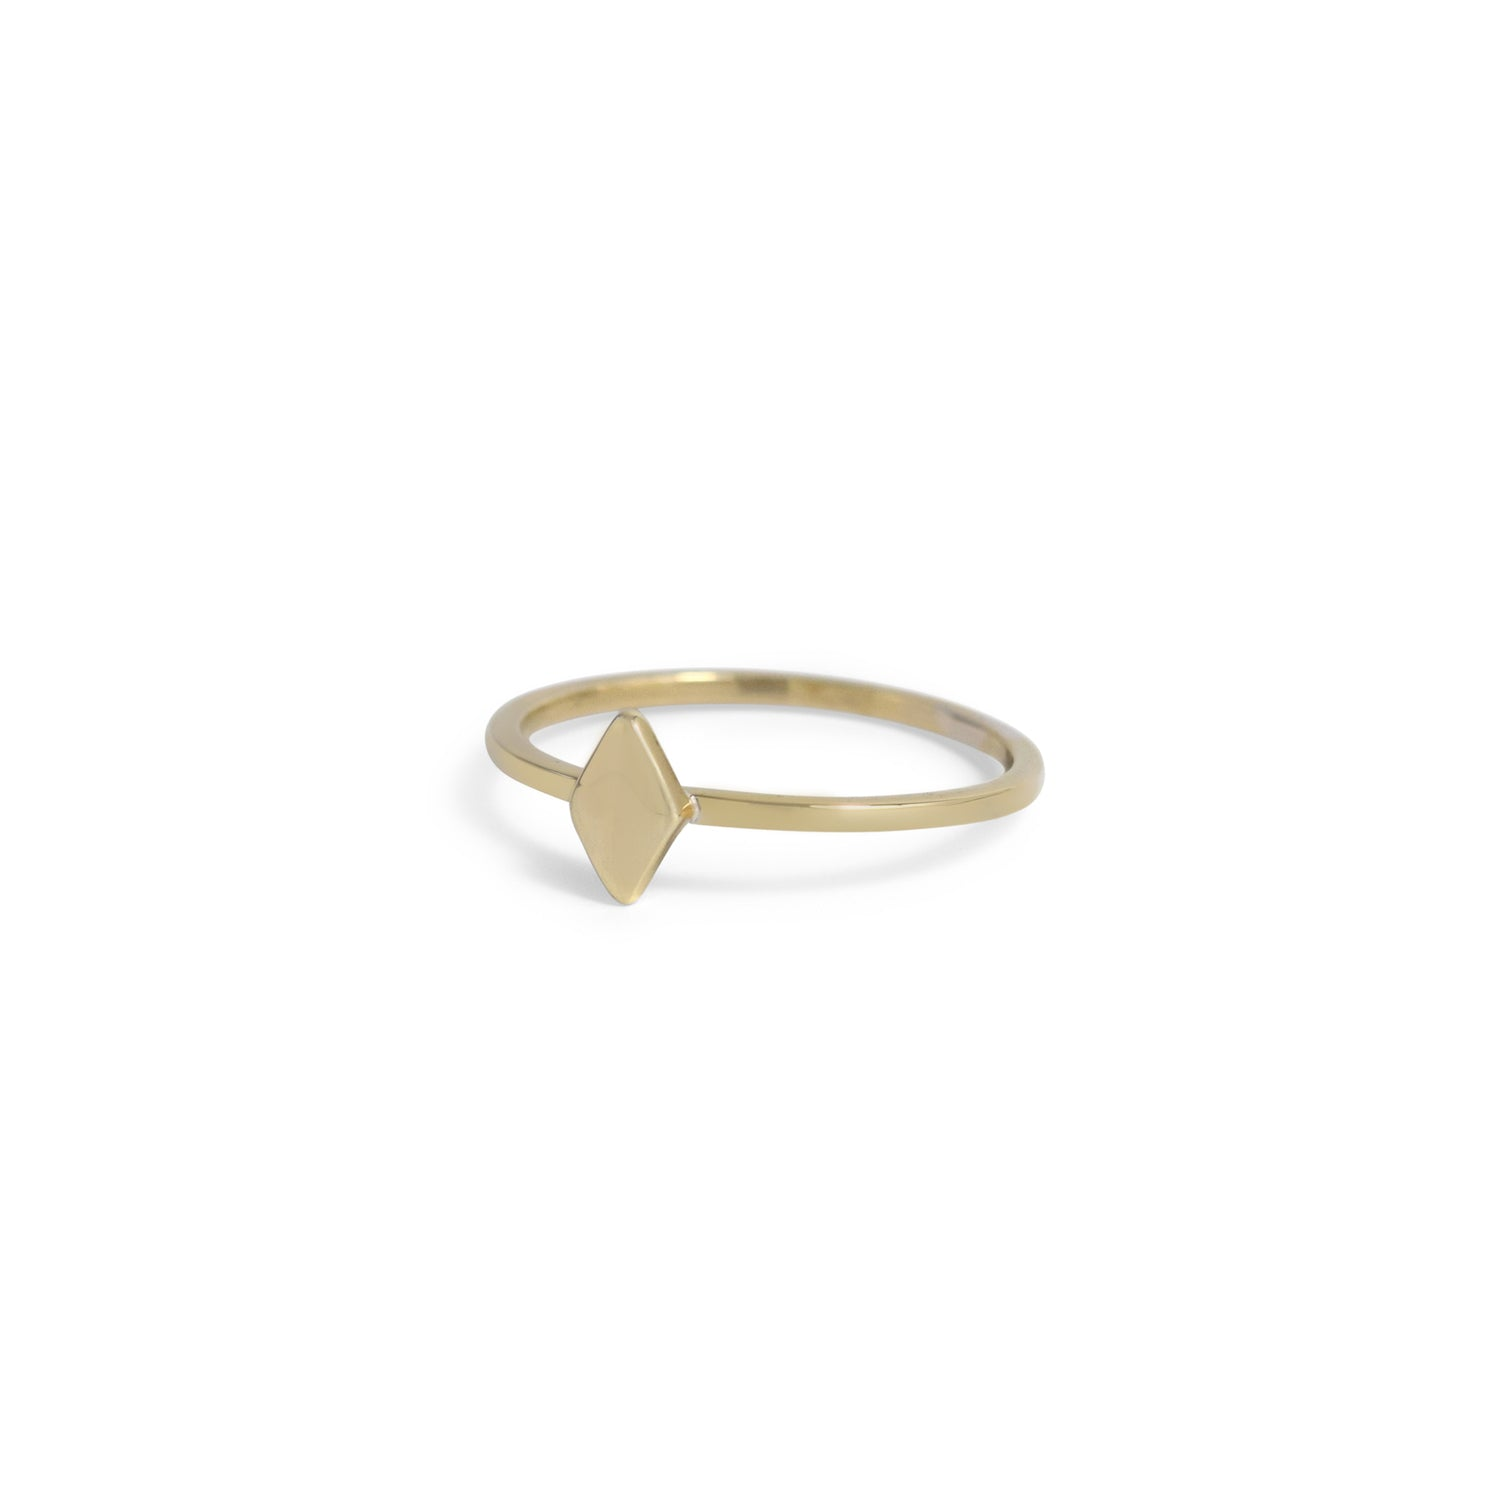 Celestial Diamond Stacking Ring - Lissa Bowie